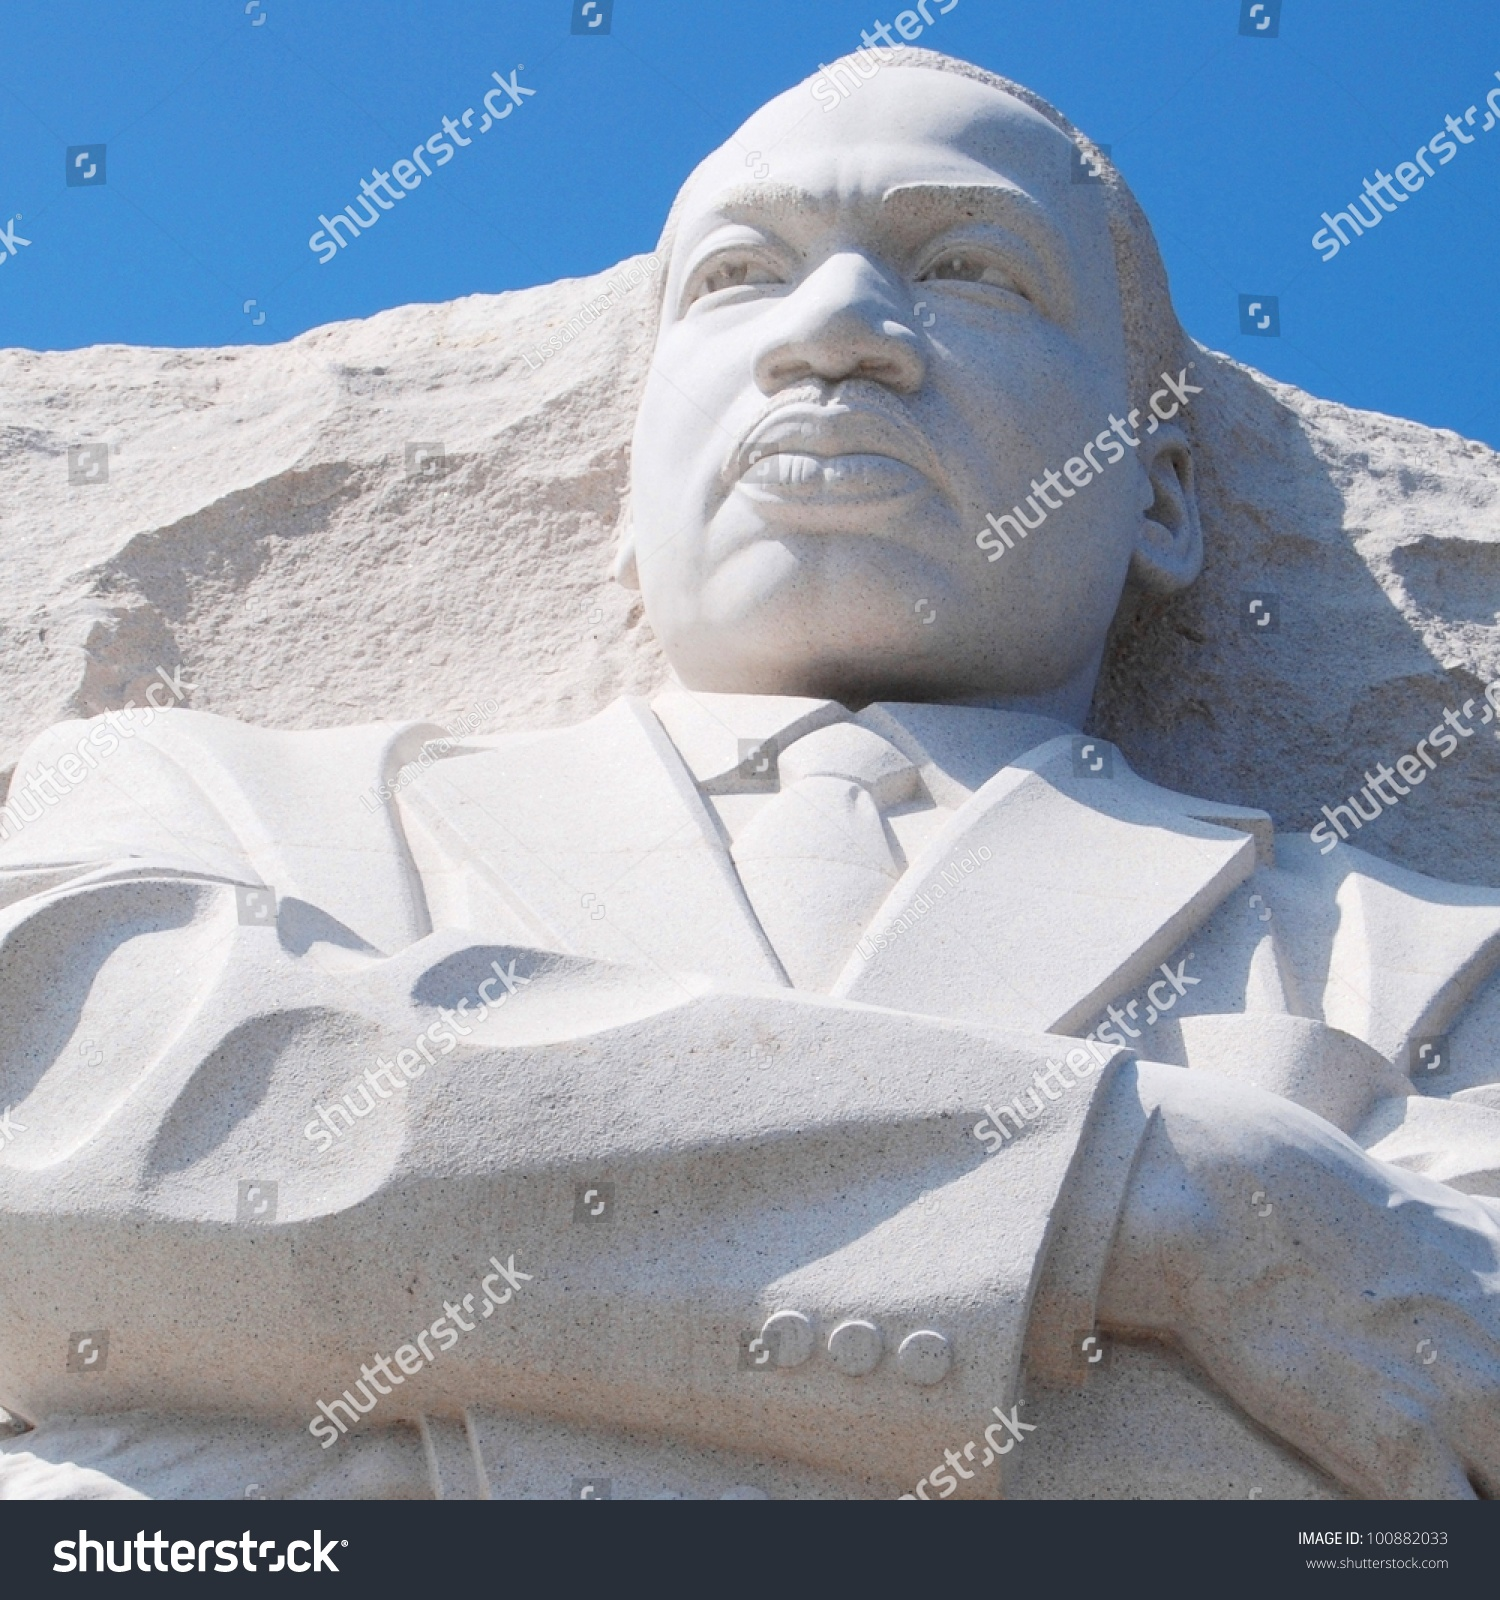 martin luther king jr. doctoral dissertation Mlk plagiarism dissertation  2016 -martin luther king jr reluctantly acknowledged yesterday monday,  he plagiarized parts of his doctoral dissertation.